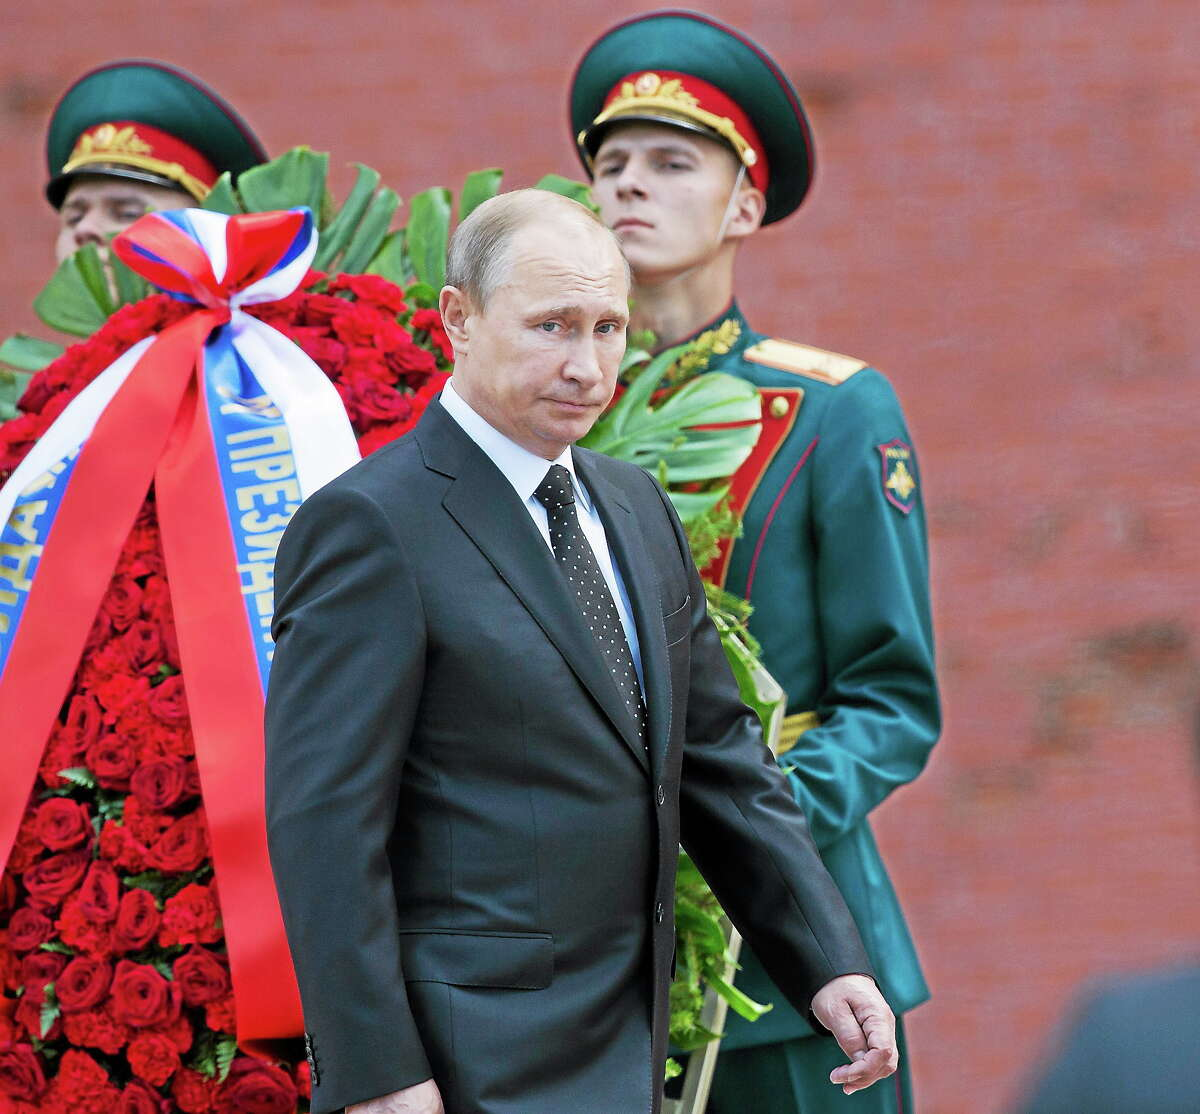 Russian President Vladimir Putin takes part in a wreath laying ceremony at the Tomb of the Unknown Soldier outside Moscow's Kremlin Wall, in Moscow, Russia on June 22, 2014 to mark the 73rd anniversary of the Nazi invasion of the Soviet Union.